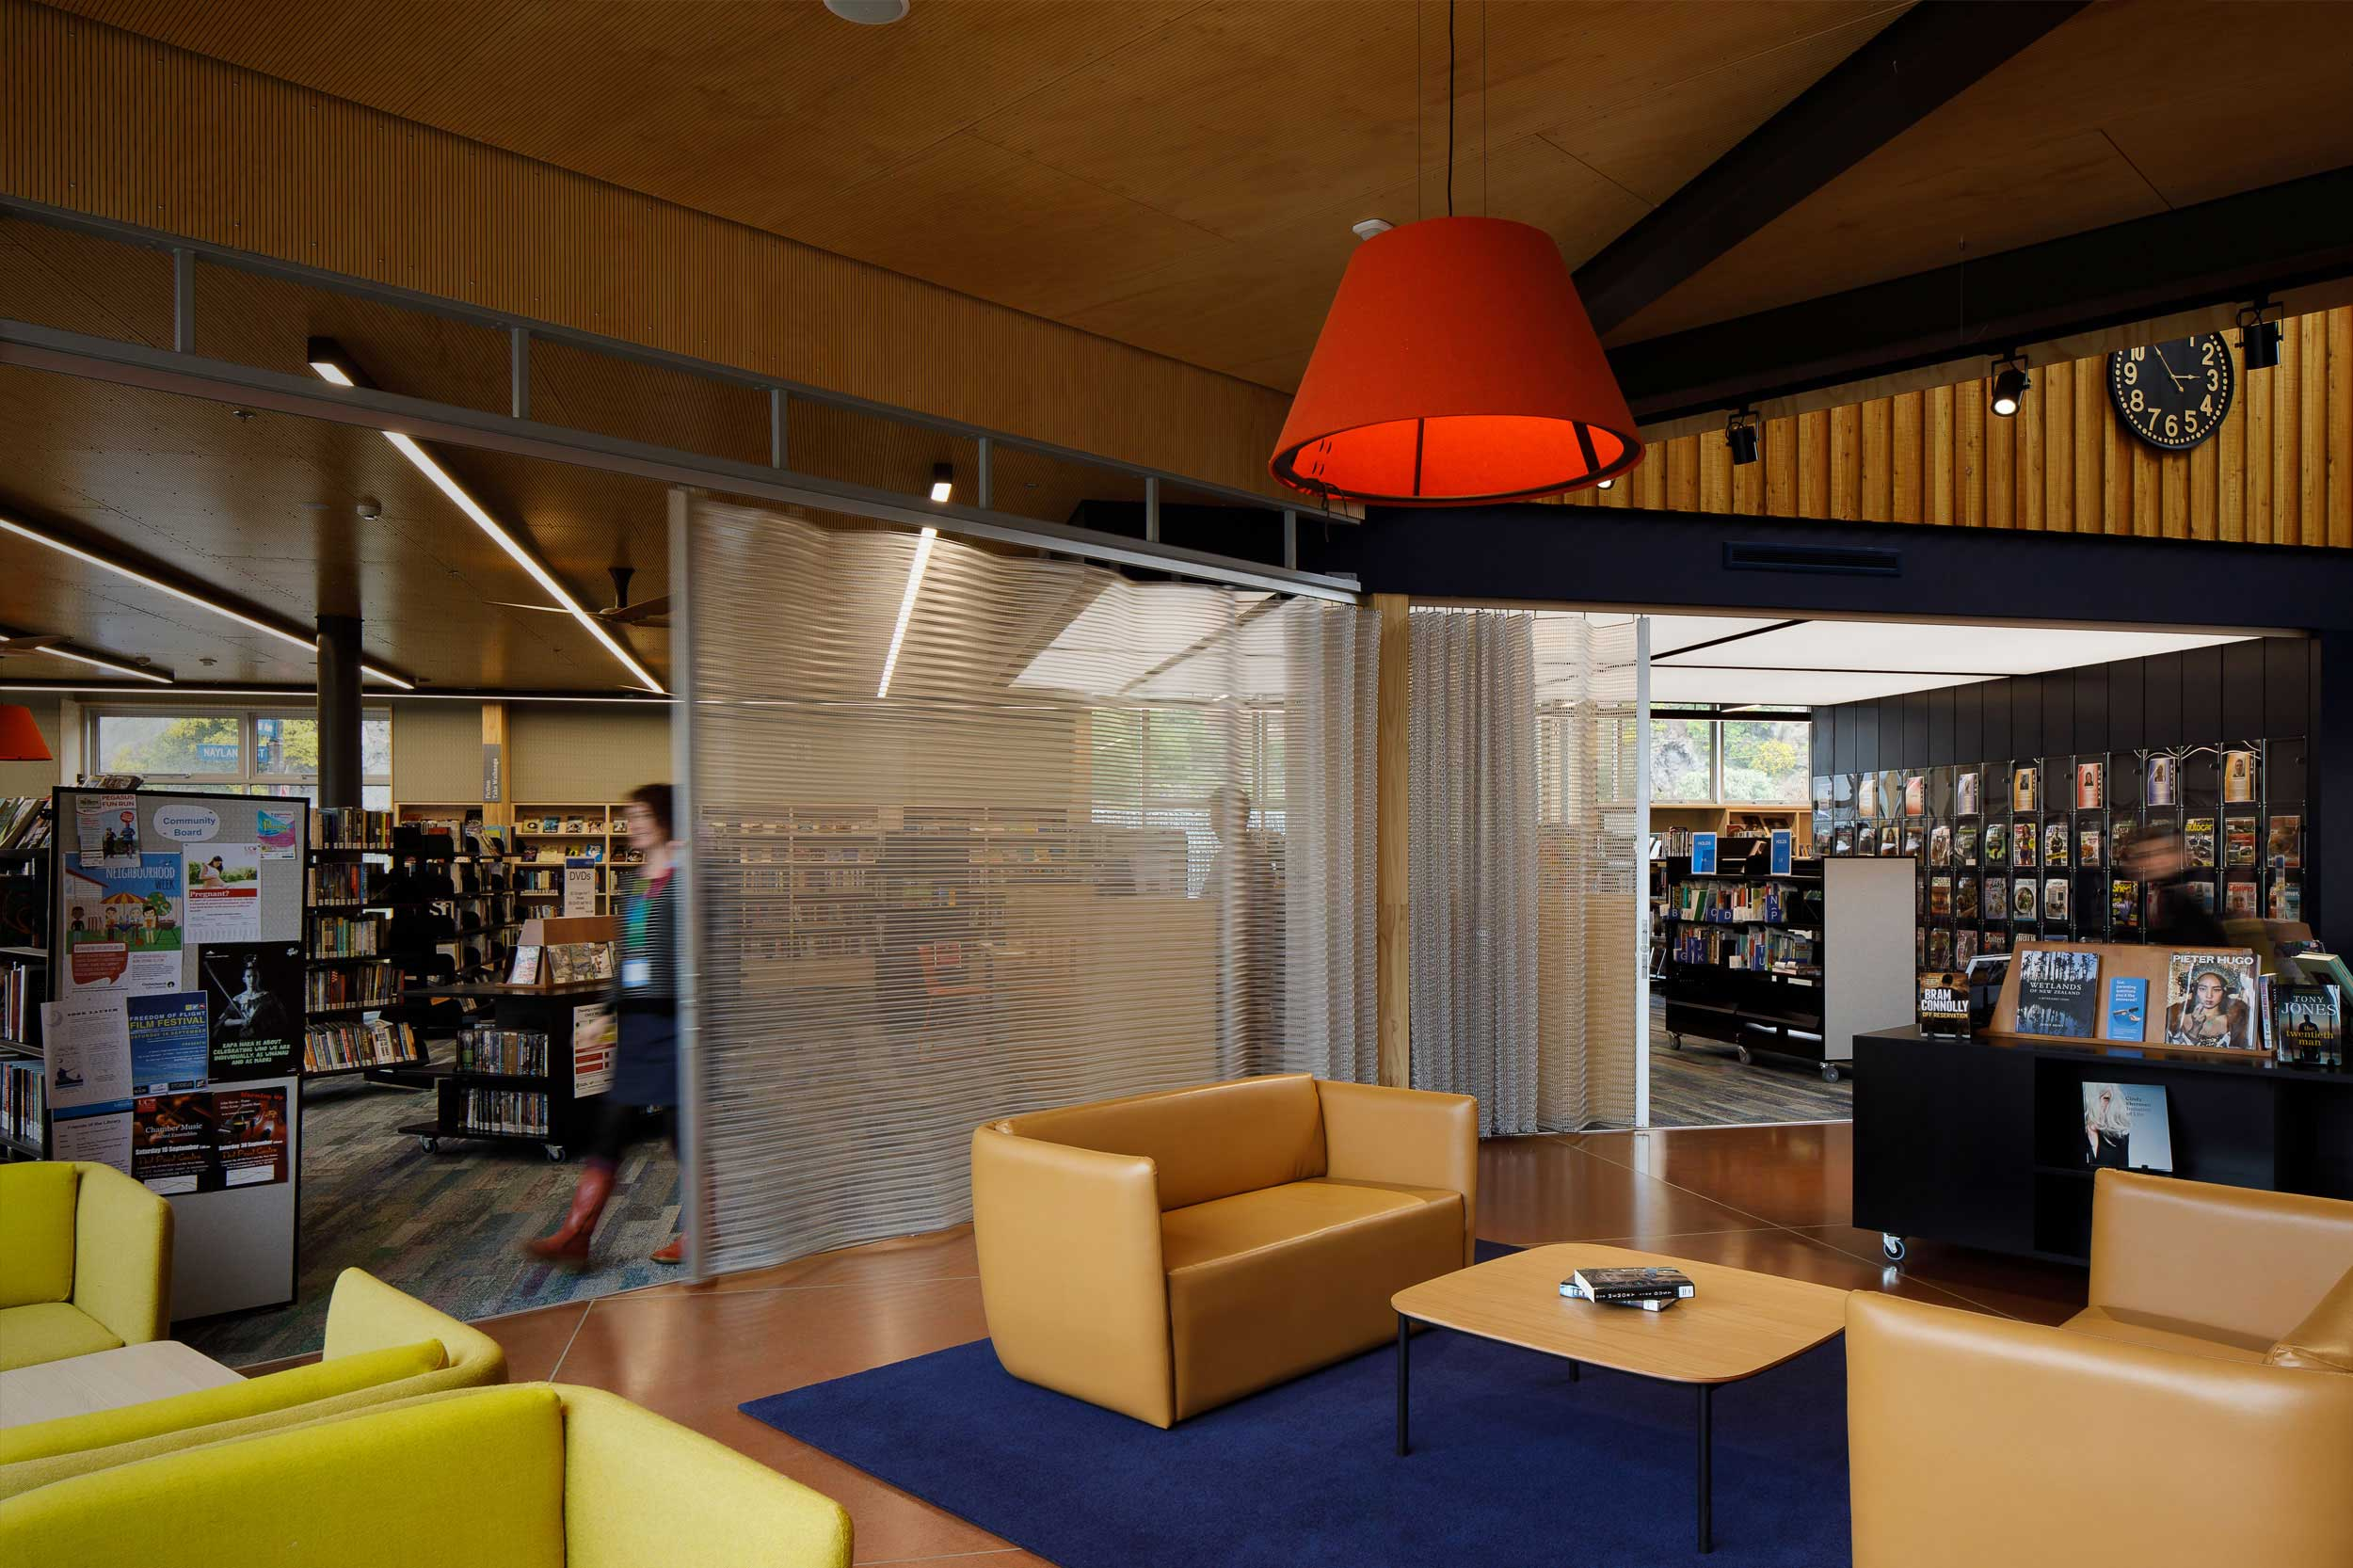 Beautiful Deterrent Screens for Sumner's New Library   Designed by Athfield Architects in Christchurch, the new centre includes re-purposed Kaynemaile mesh previously used in the old Sumner library before the 2011 earthquake. The new folding deterrent screens are used to...  Read more